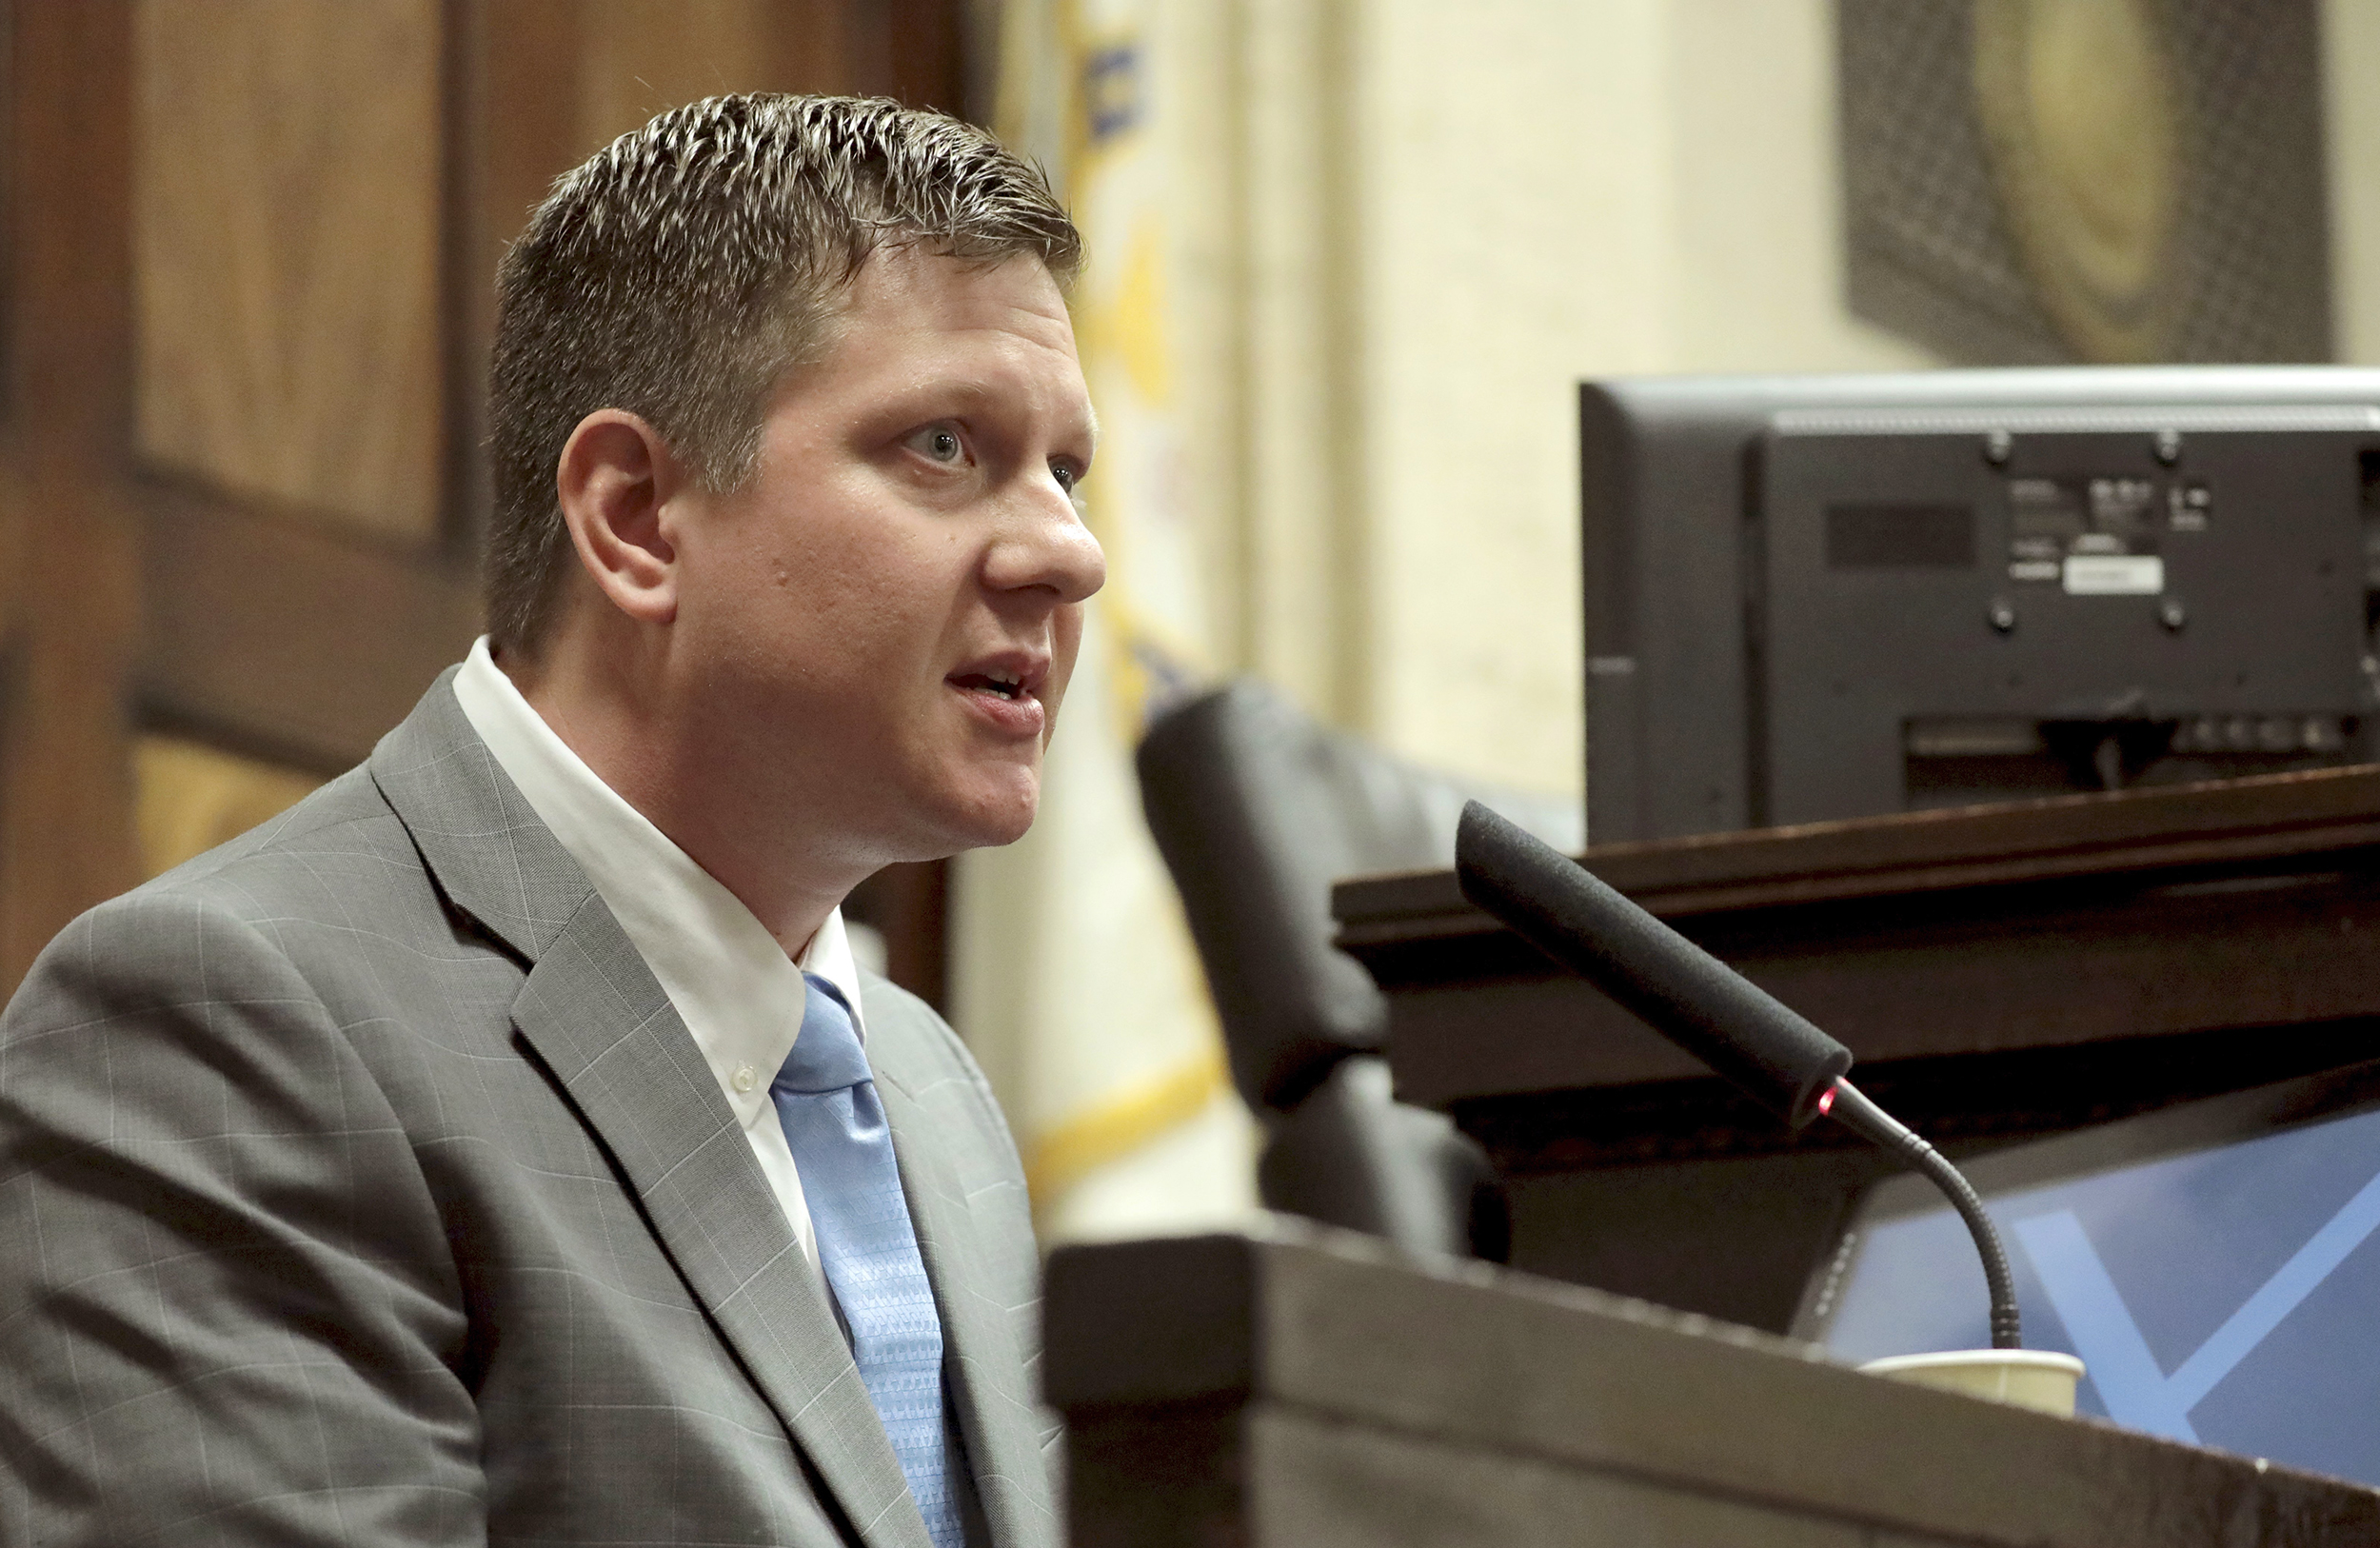 Chicago police Officer Jason Van Dyke takes the stand in his murder trial on Oct. 2, 2018 for the shooting death of Laquan McDonald, in Chicago.